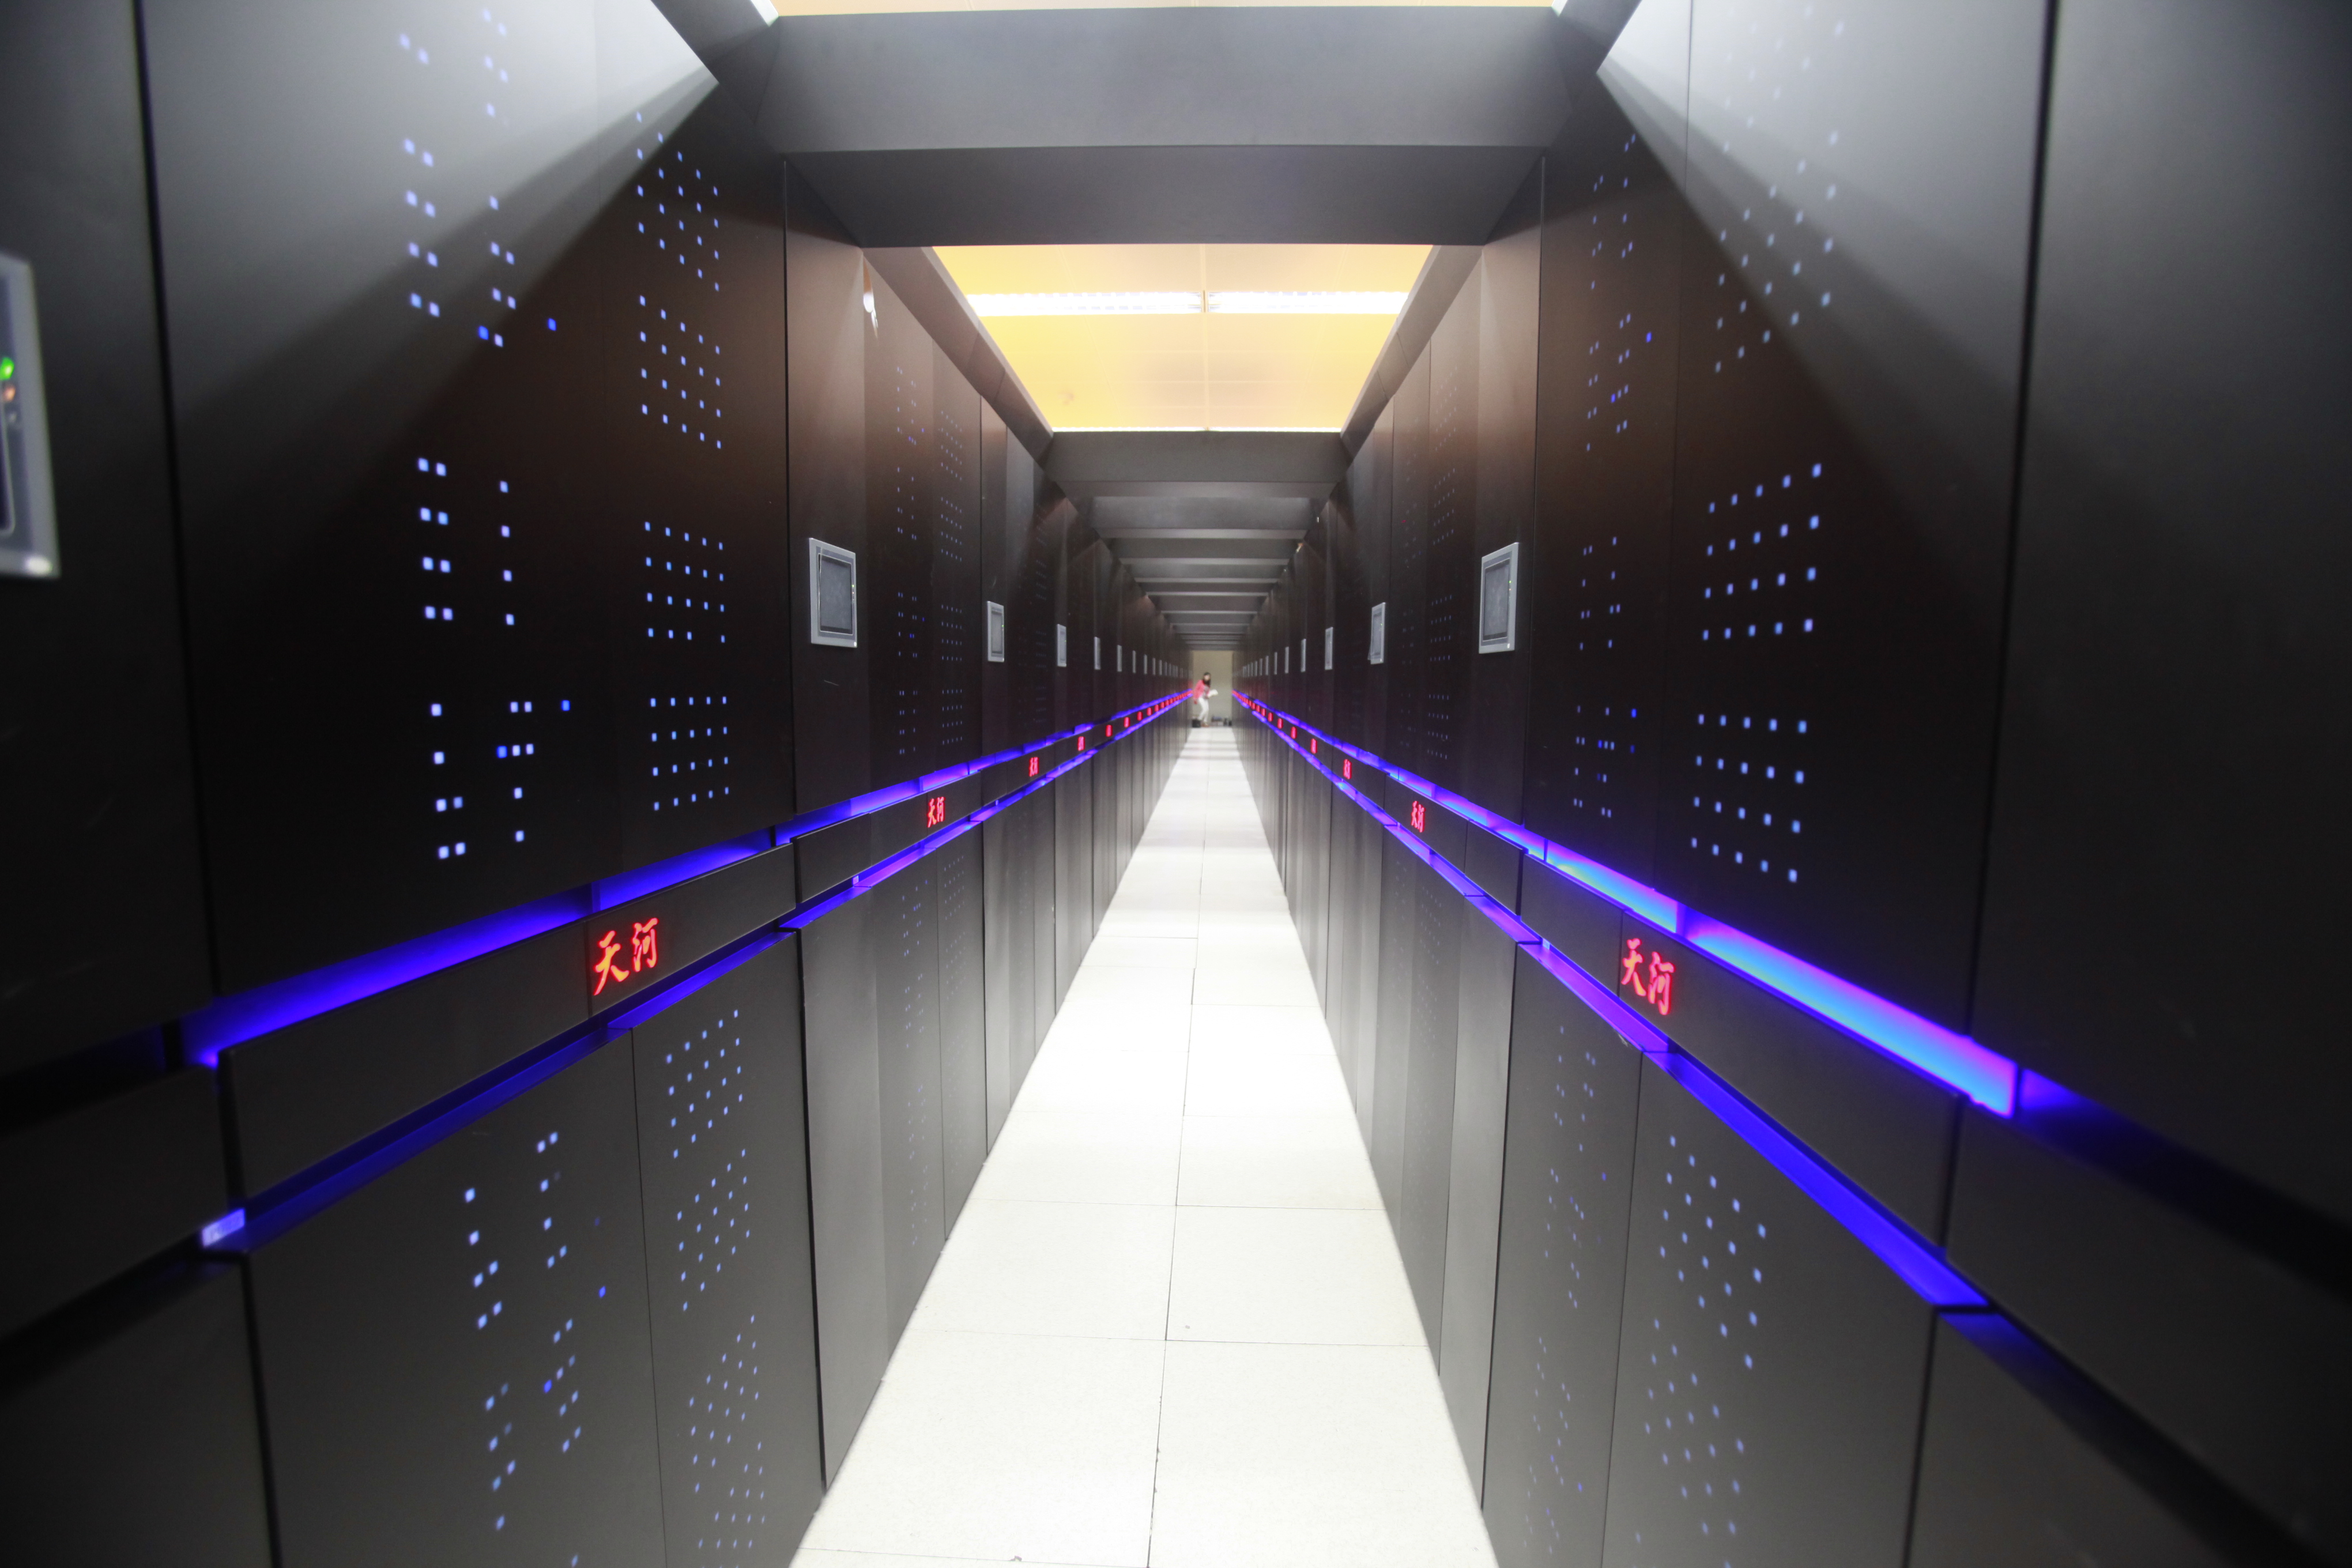 Chinese-developed supercomputer The Tianhe-2 is pictured at the National University of Defense Technology in Changsha city, central Chinas Hunan province, 14 June 2013.